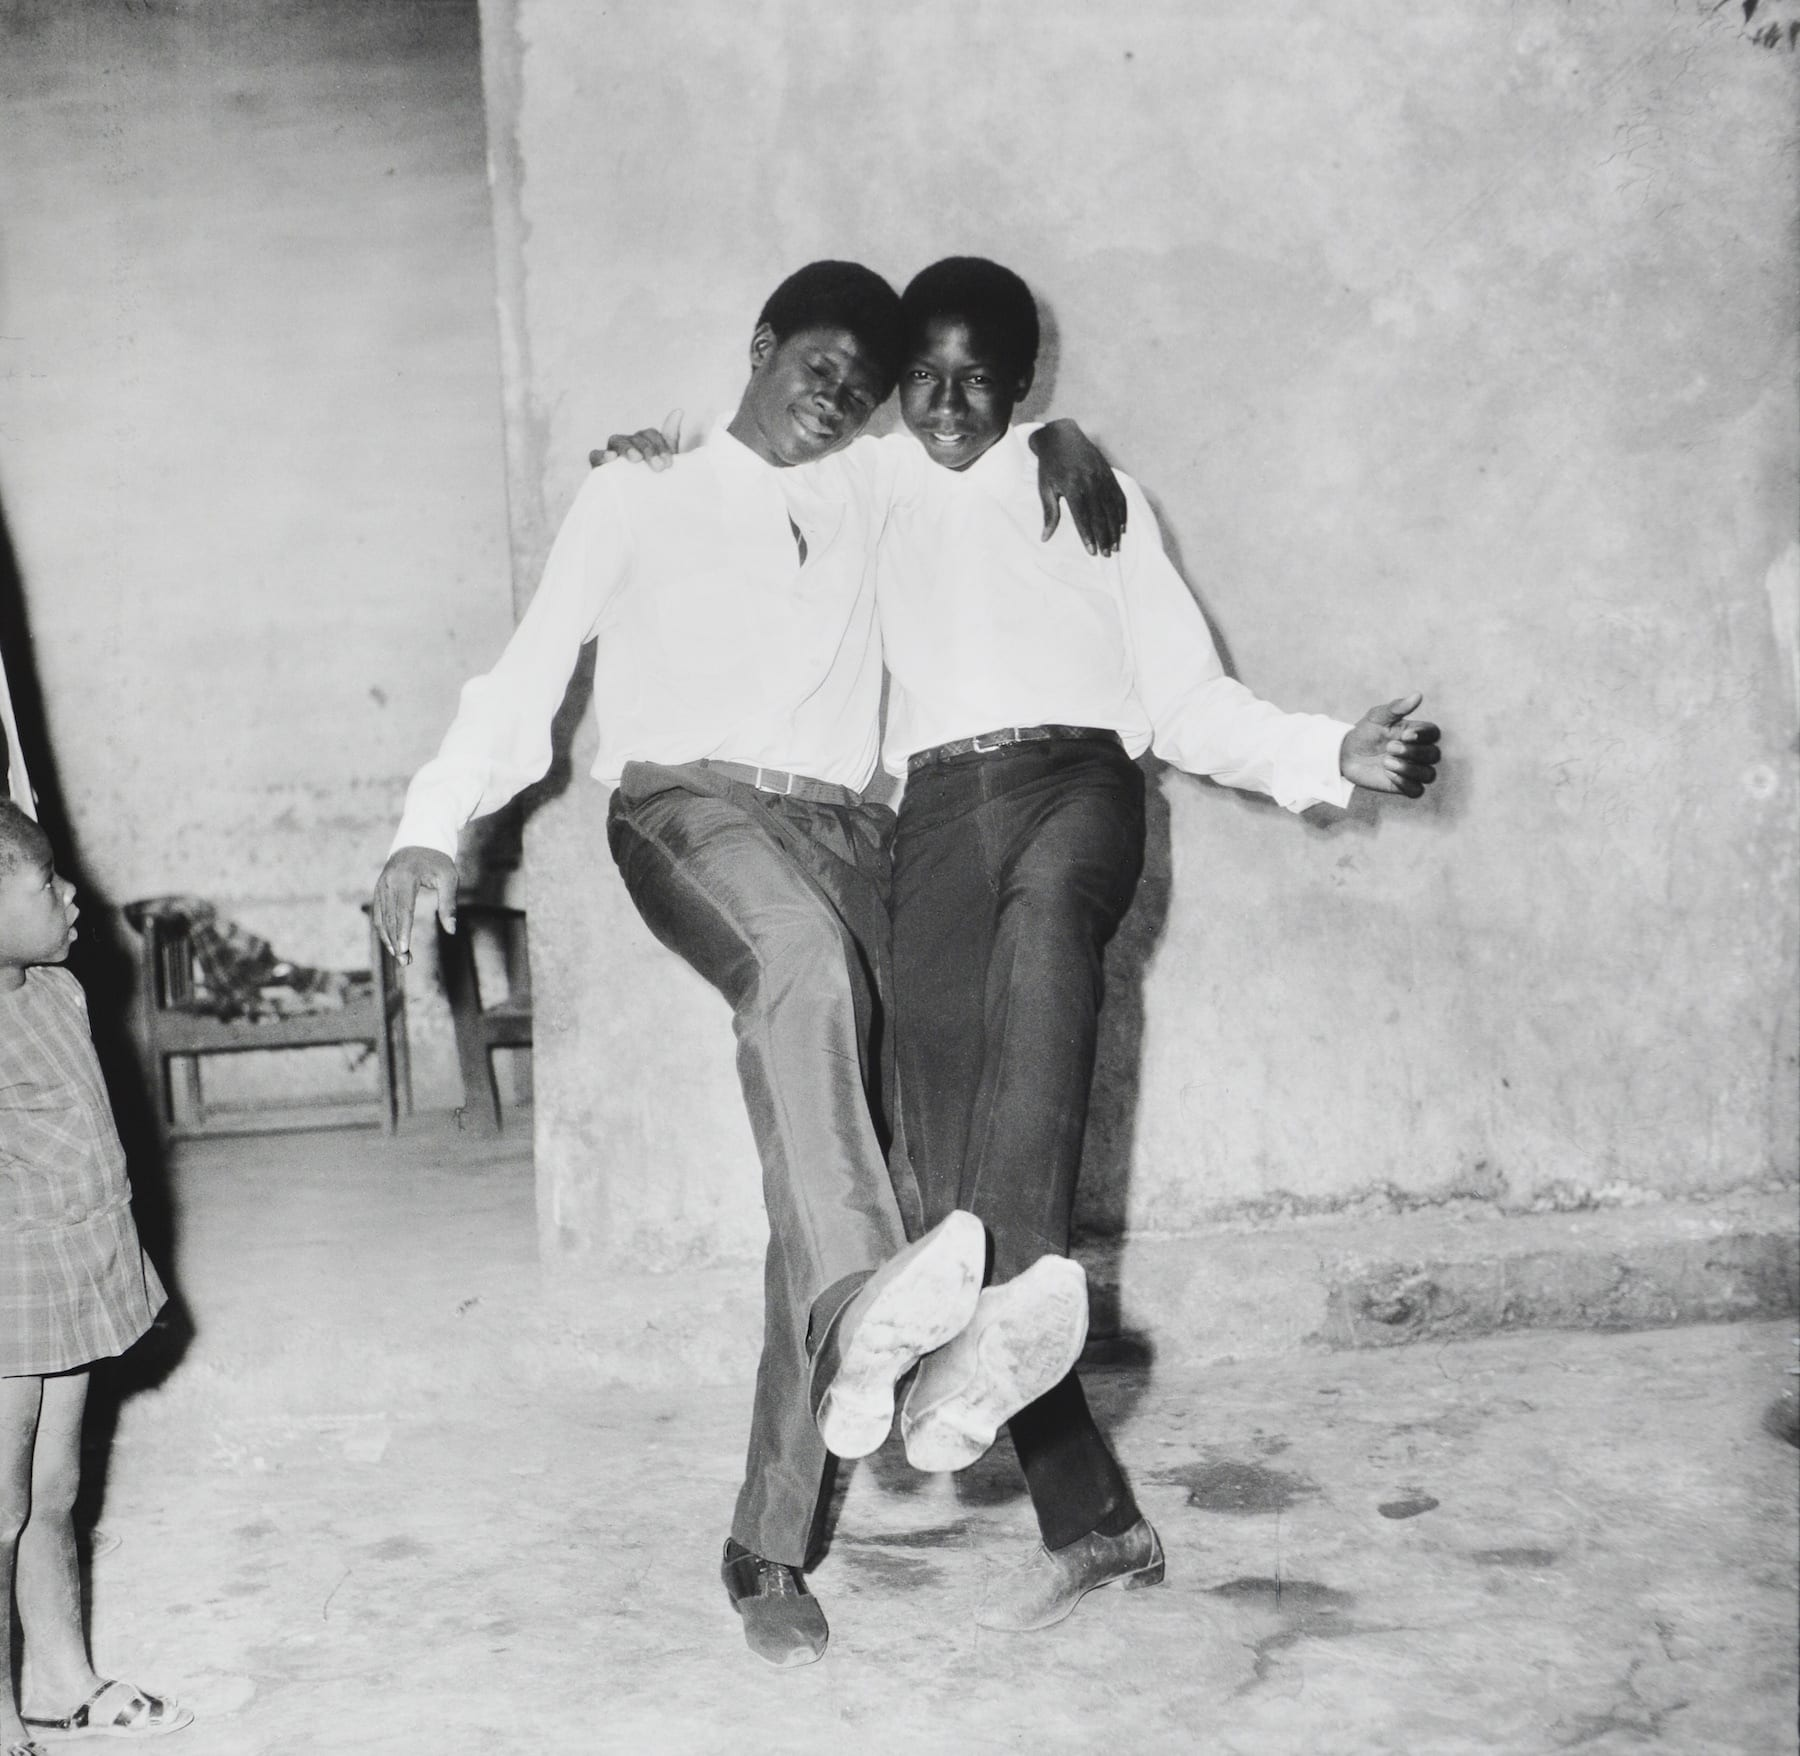 Malick Sidibe-Show of Two Friends-HackelBury Fine Art - black and white photograph of two people with their arms around each other